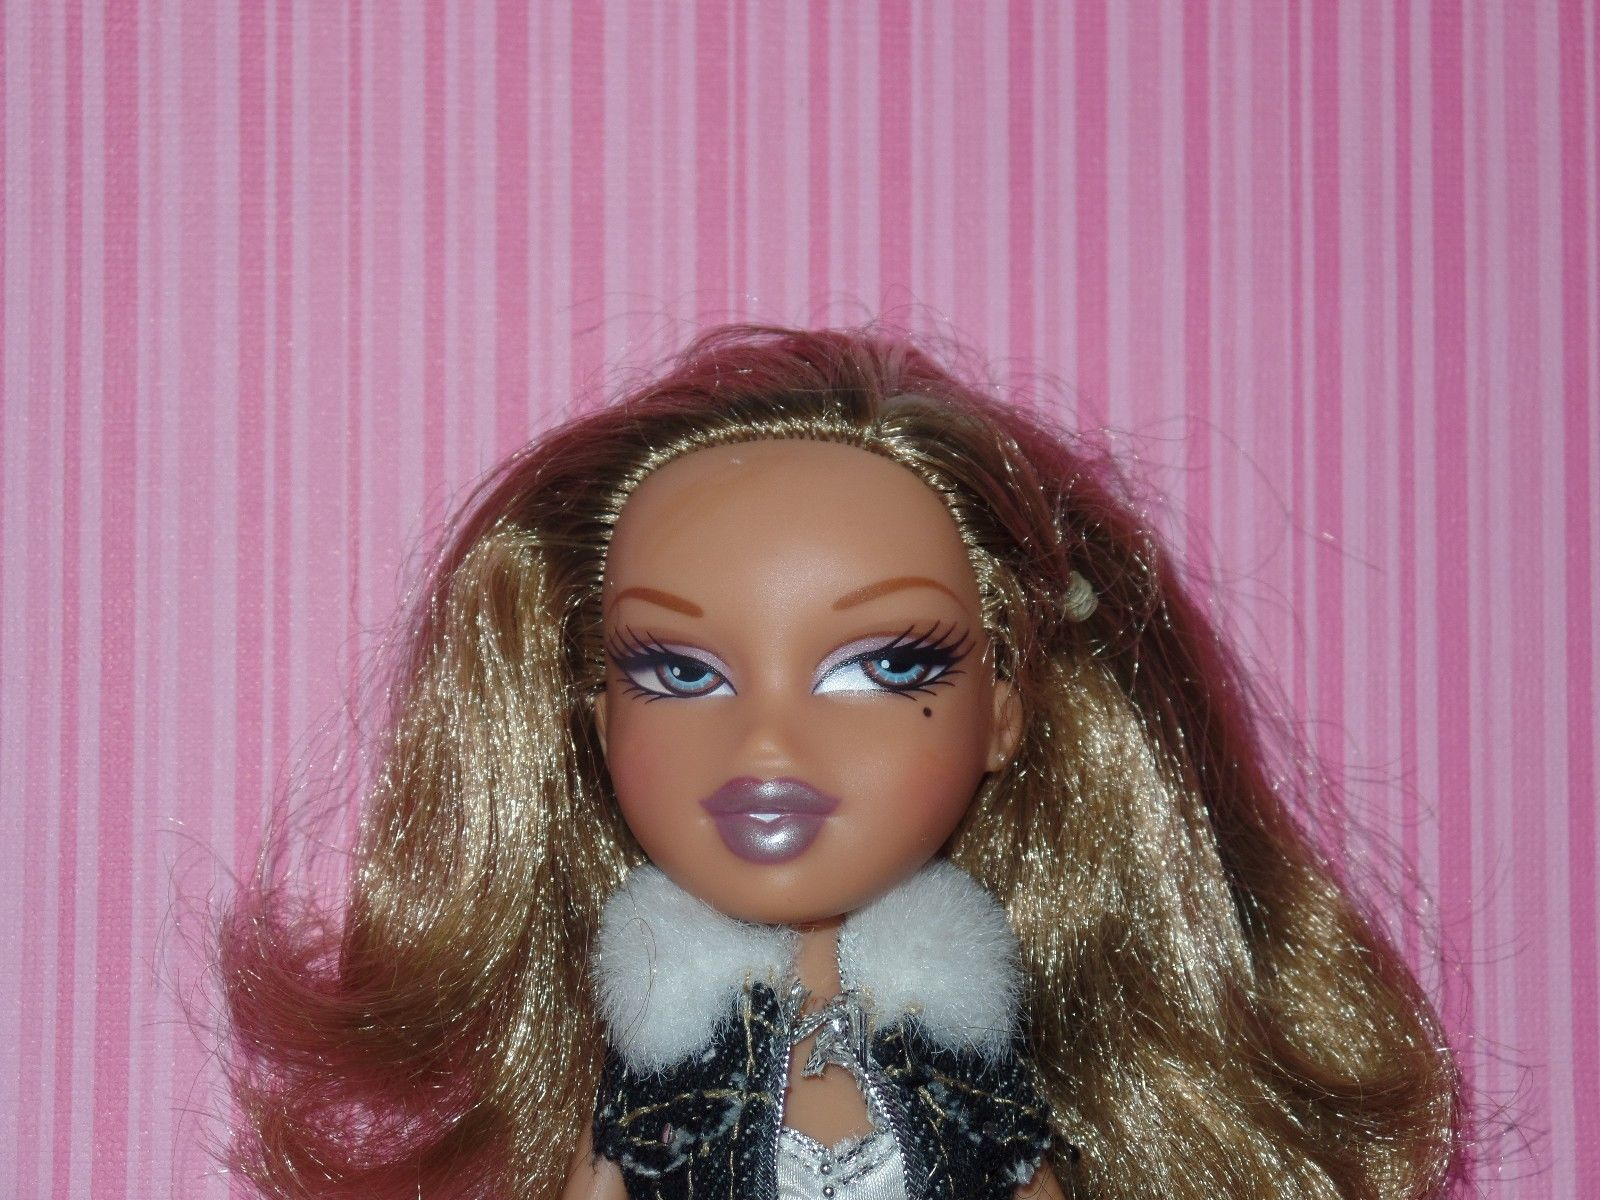 Yasmin Bratz Doll With Clothes Shoes Brown Hair Blue Eyes 8 Brown Hair Blue Eyes Yasmin Fashion